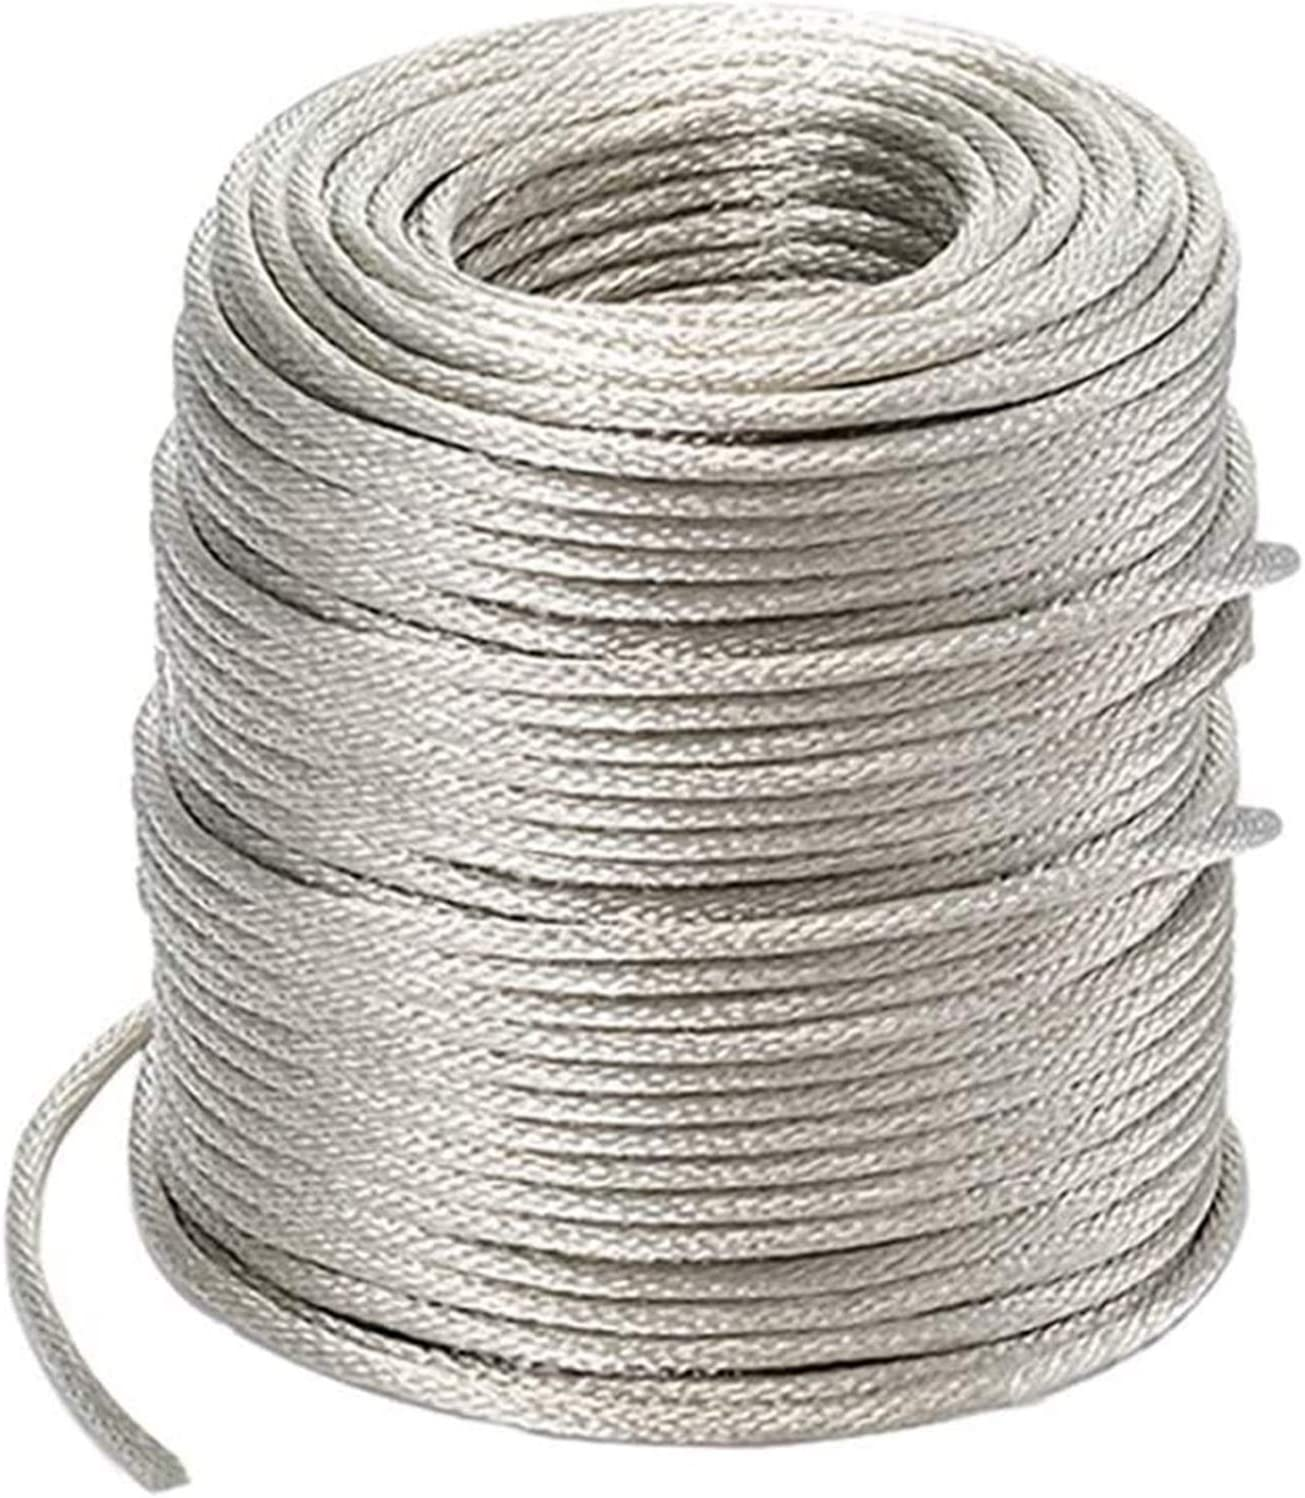 YUESFZ Braided Copper Wire tinned Drain Lead Cable Electric Stranded Round Bare Flexible Grounding Conductive 1m Brass Wire